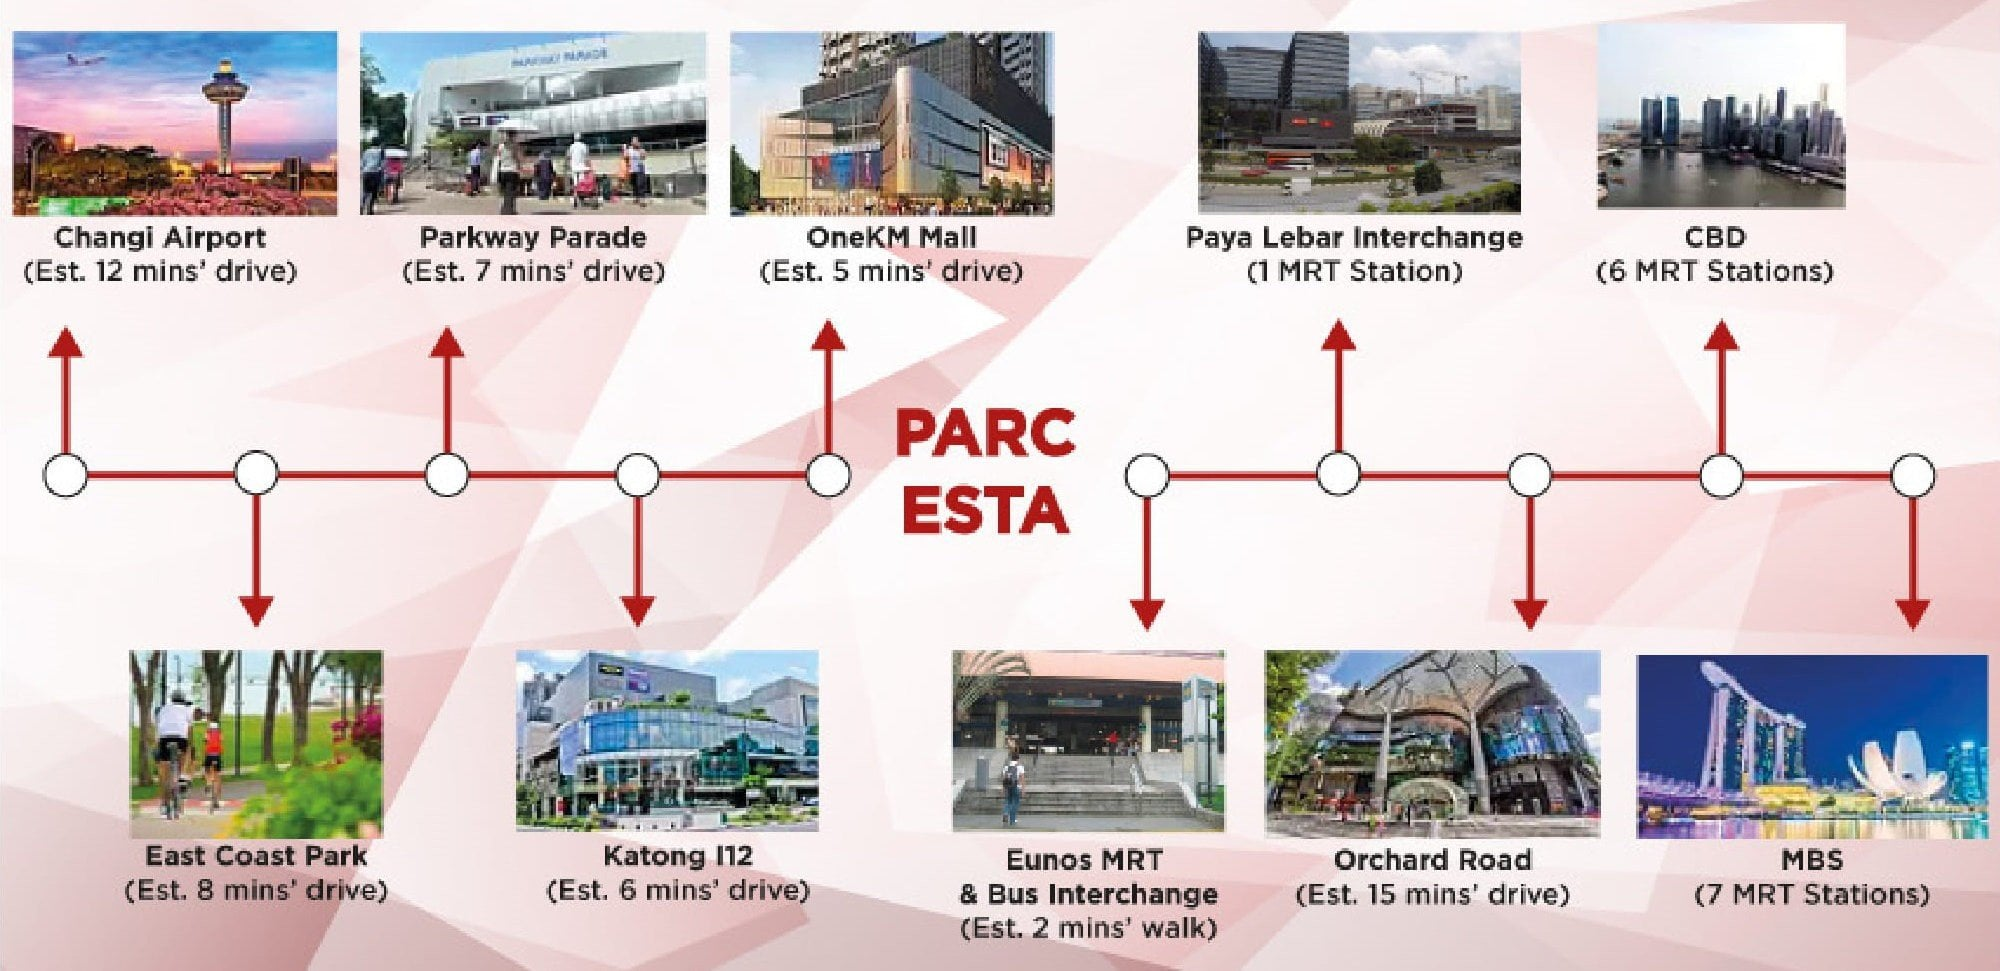 Parc Esta amenities